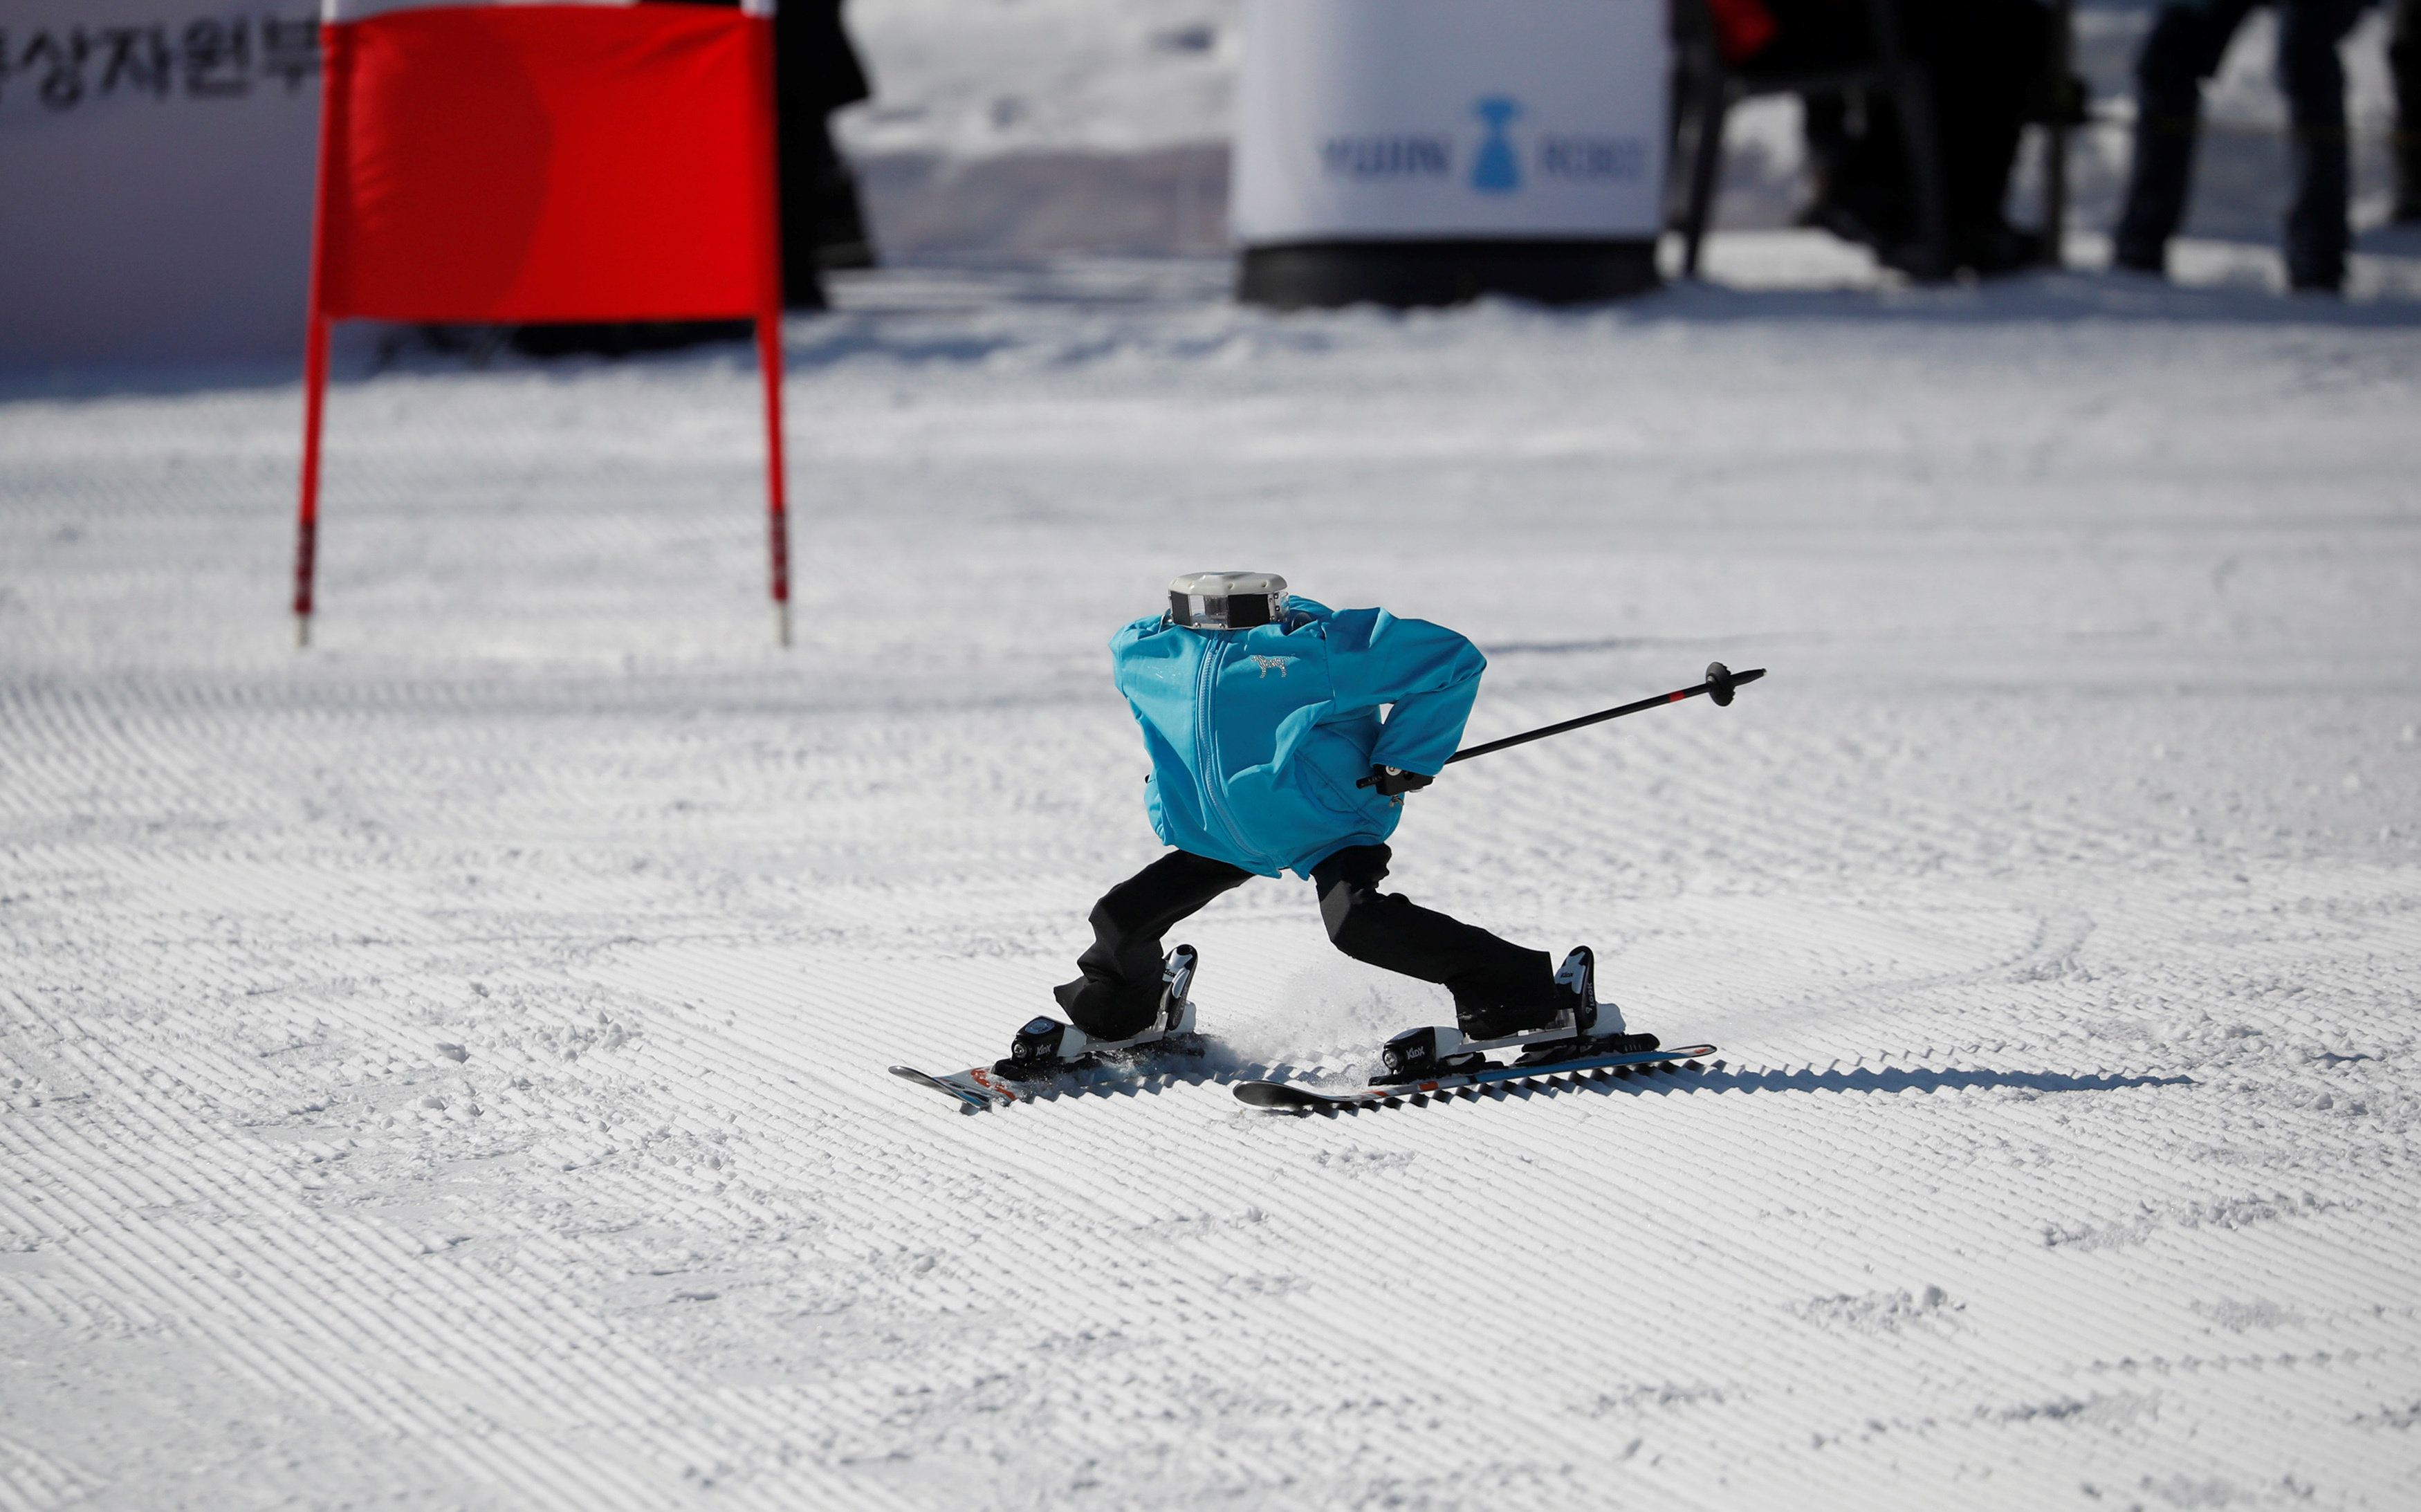 Have You Seen This? Forget the Olympics, now robots are skiing